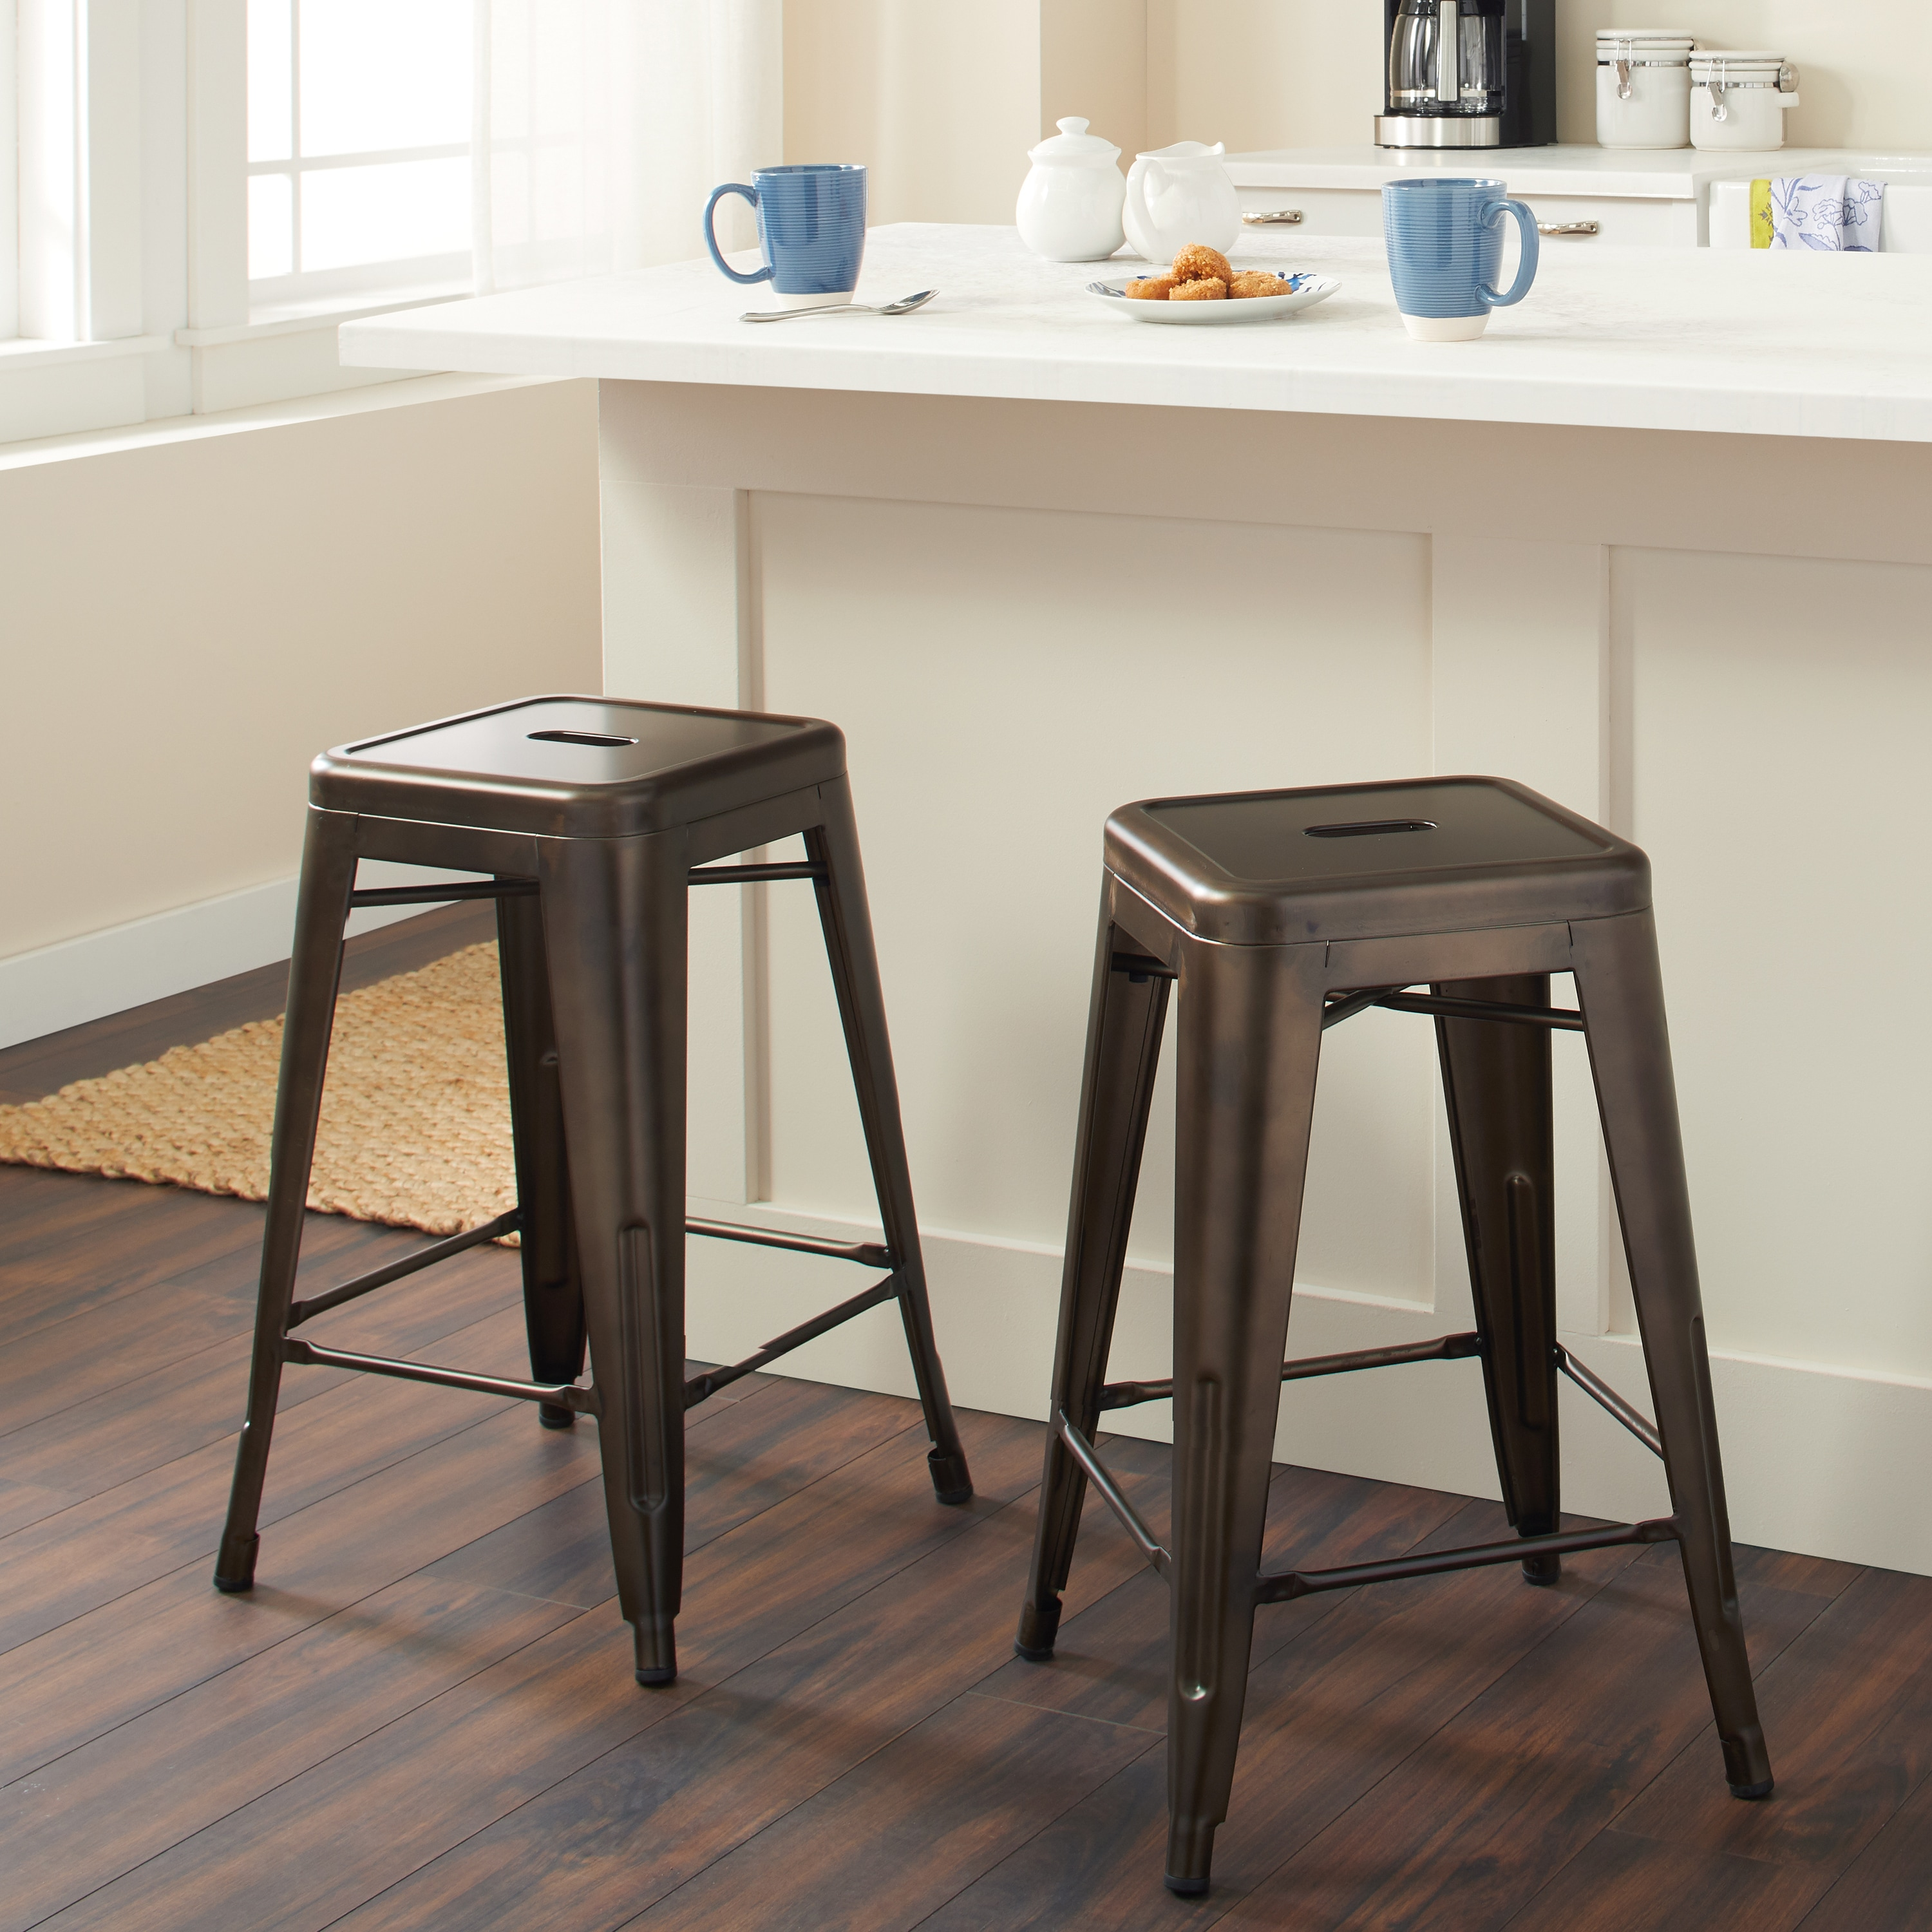 Tabourets Walmart Tabouret 24 Inch Vintage Patina Backless Counter Stool Set Of 2